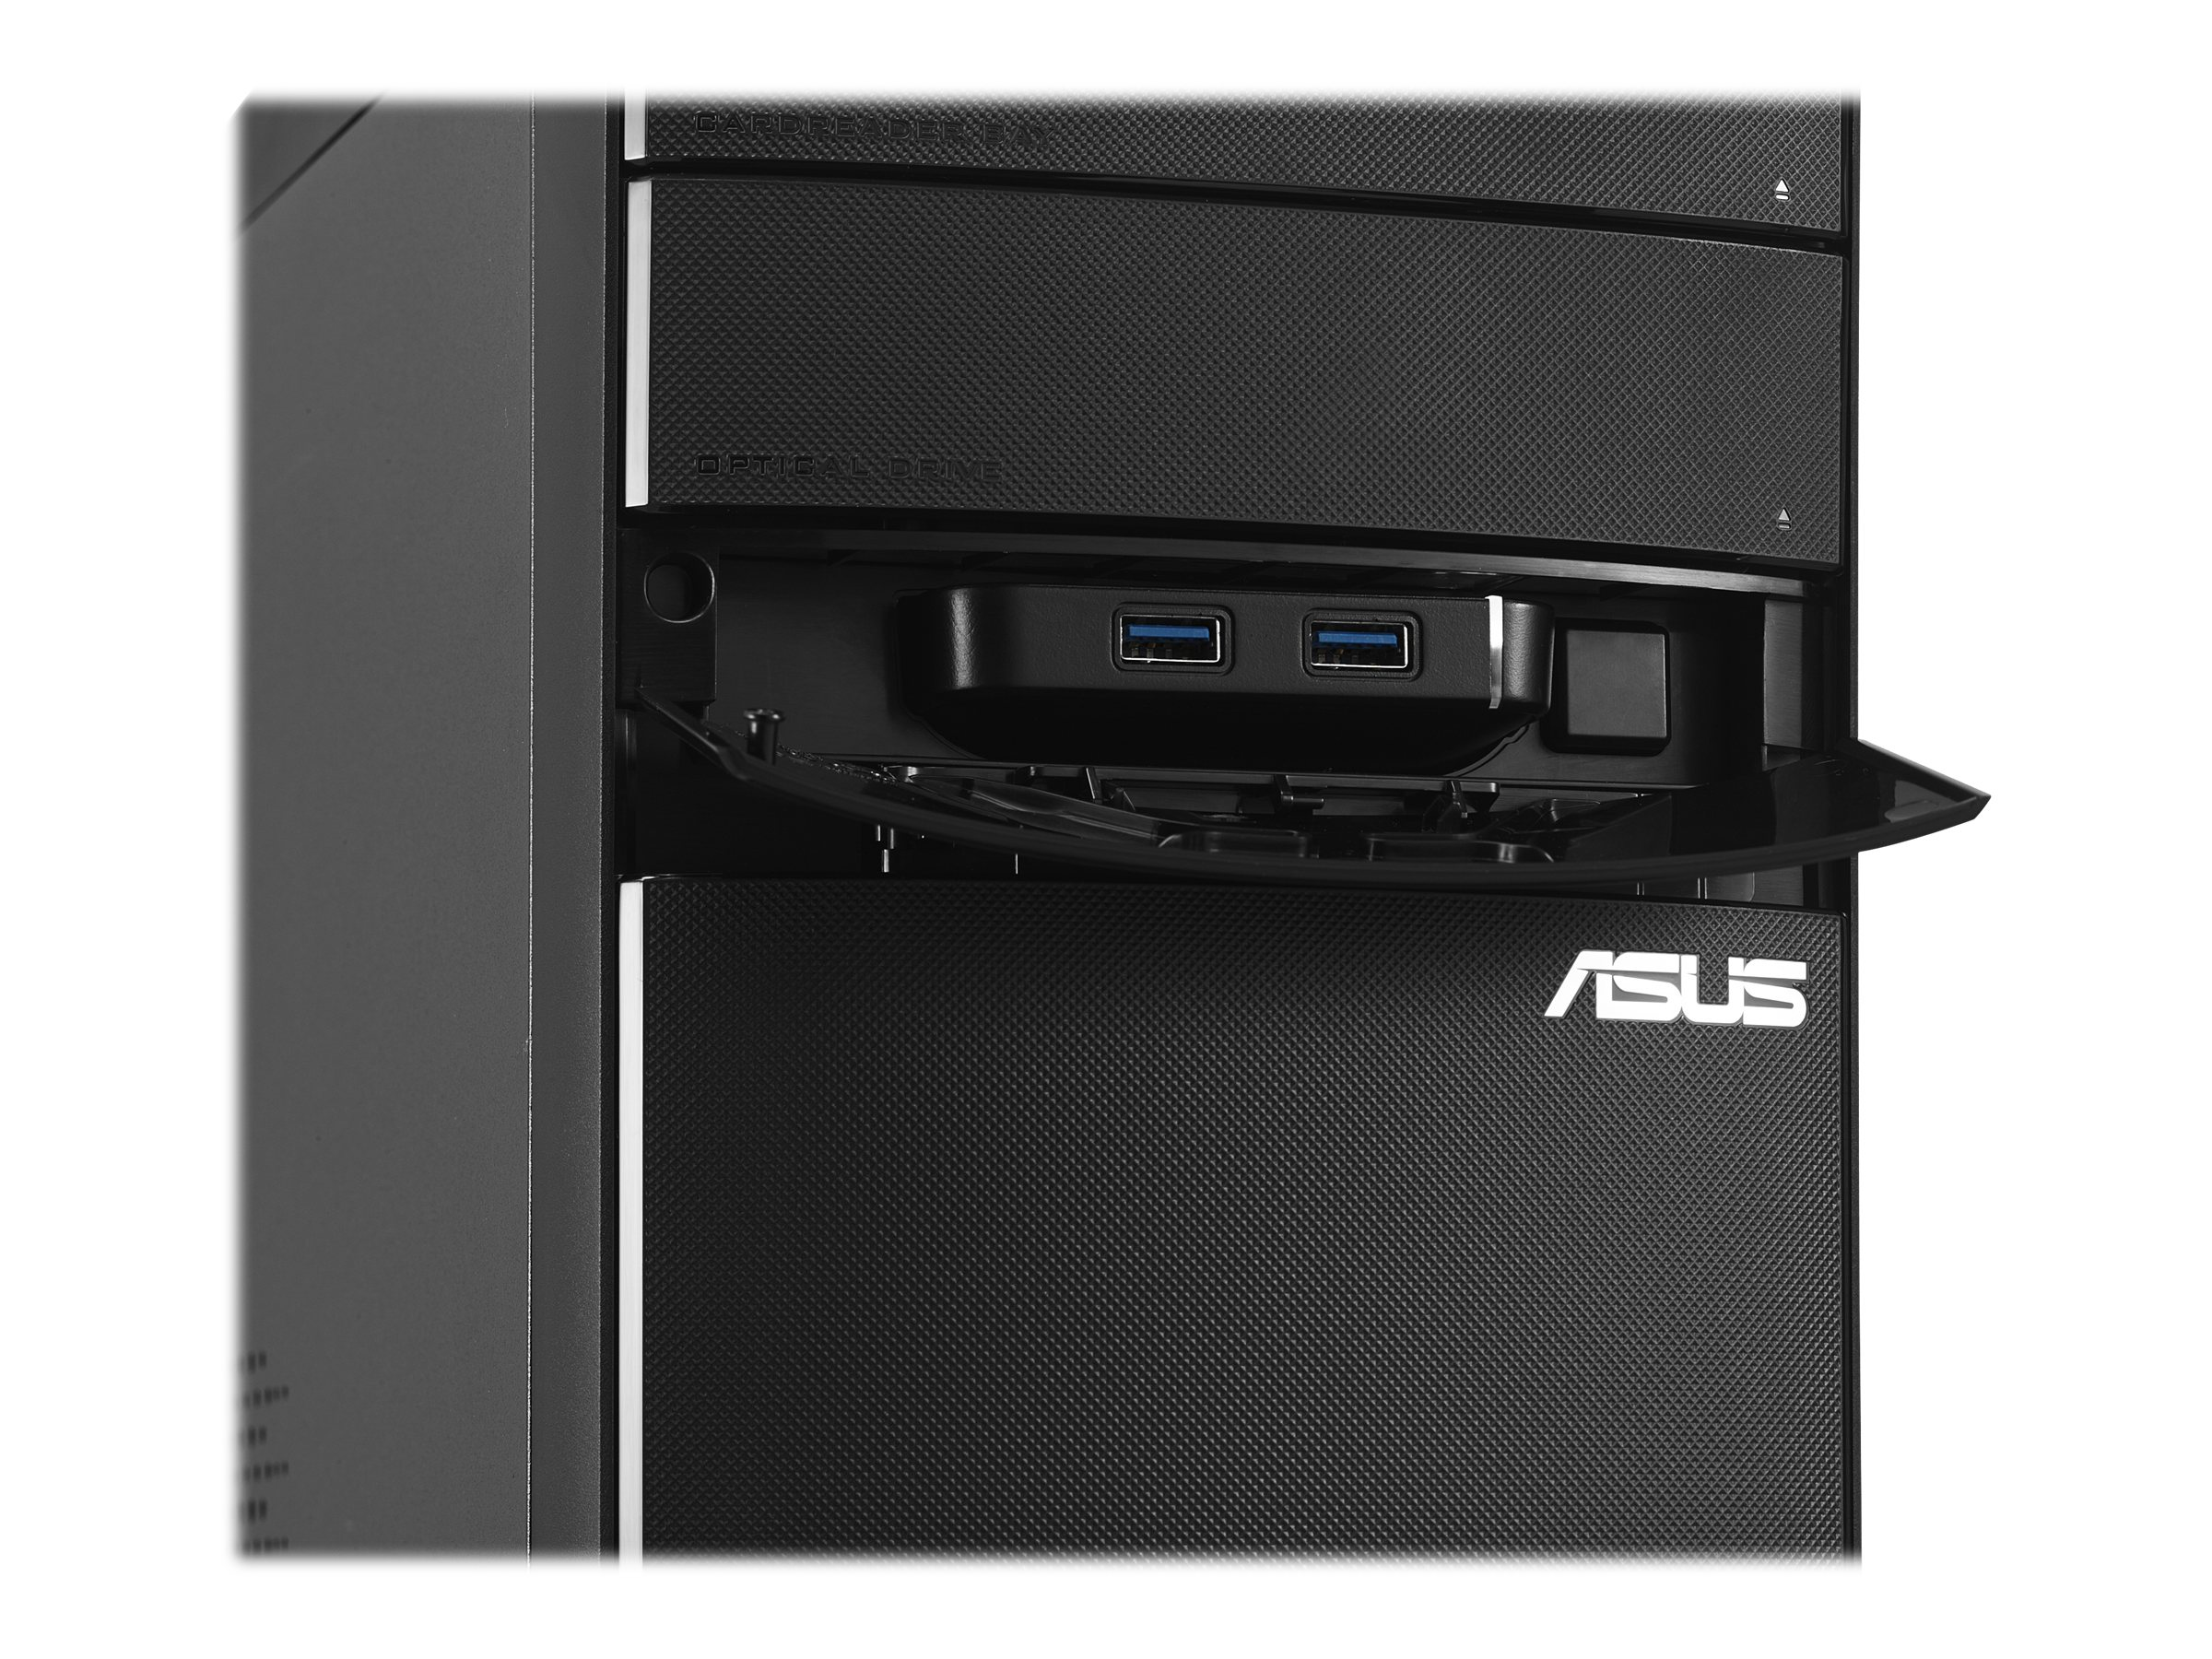 Asus M51AD-US002S Image 6